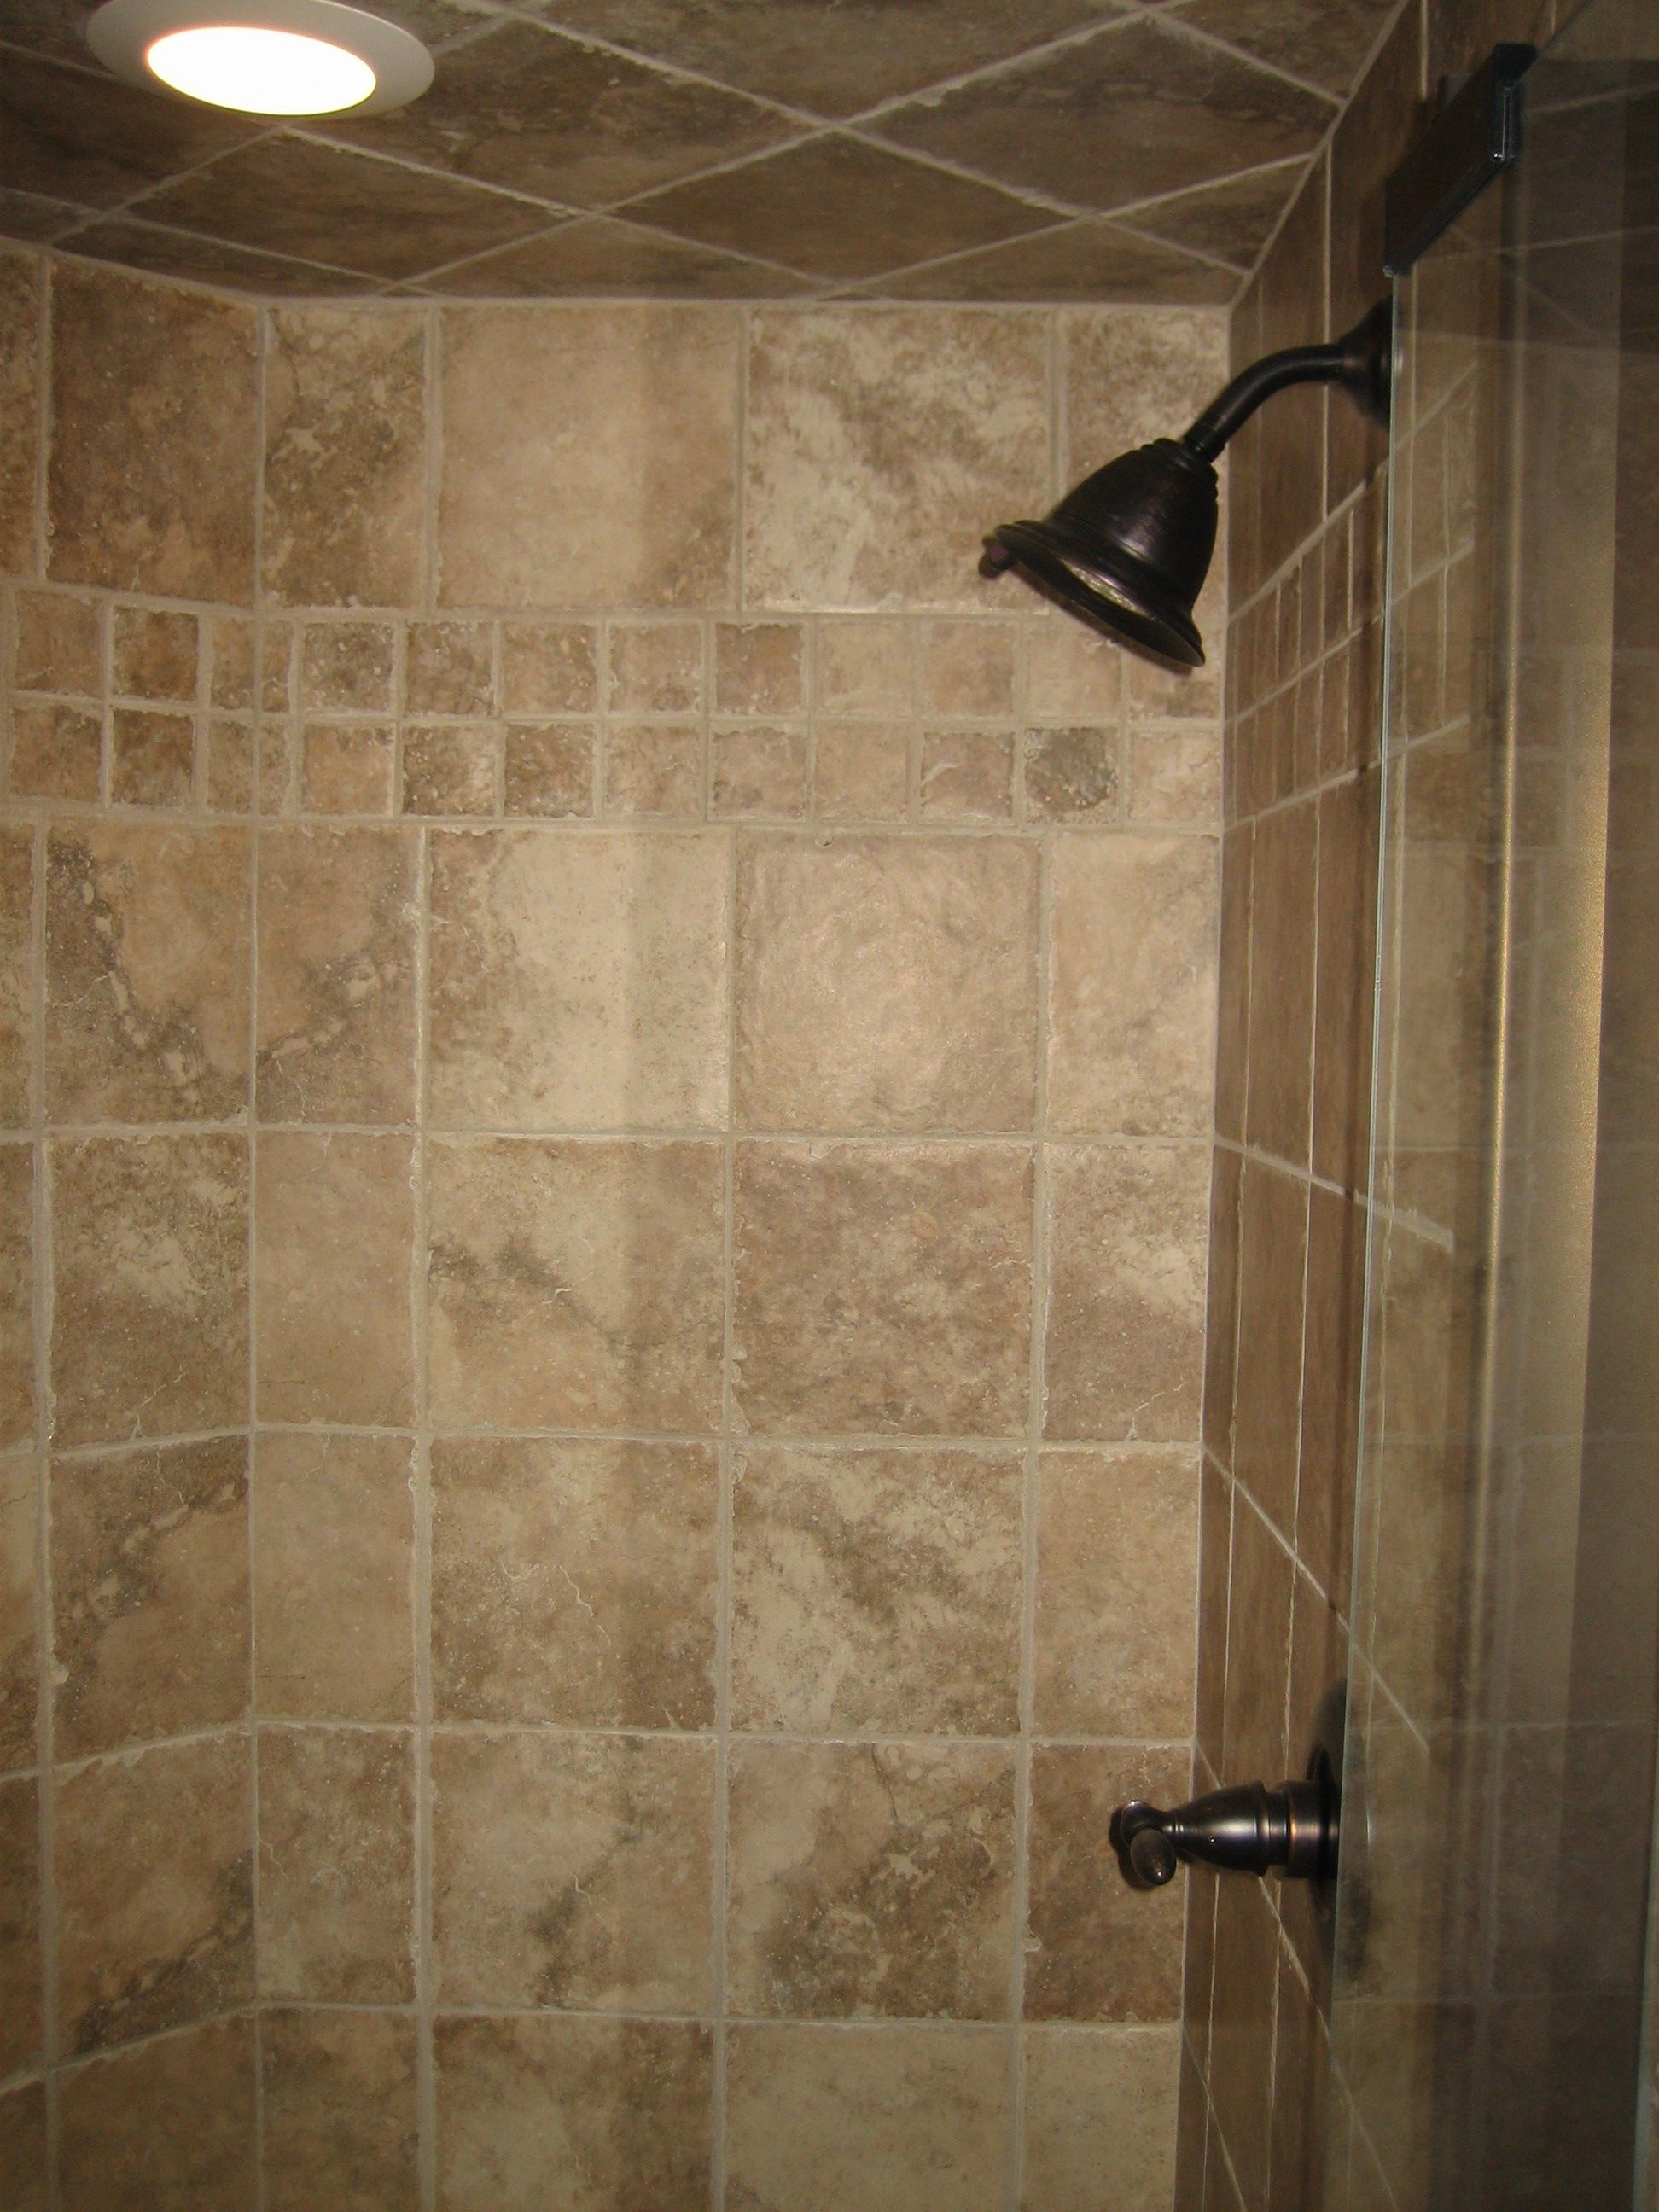 Tile Bathroom Ceiling Pictures photos of tiled shower stalls | photos gallery - custom tile work